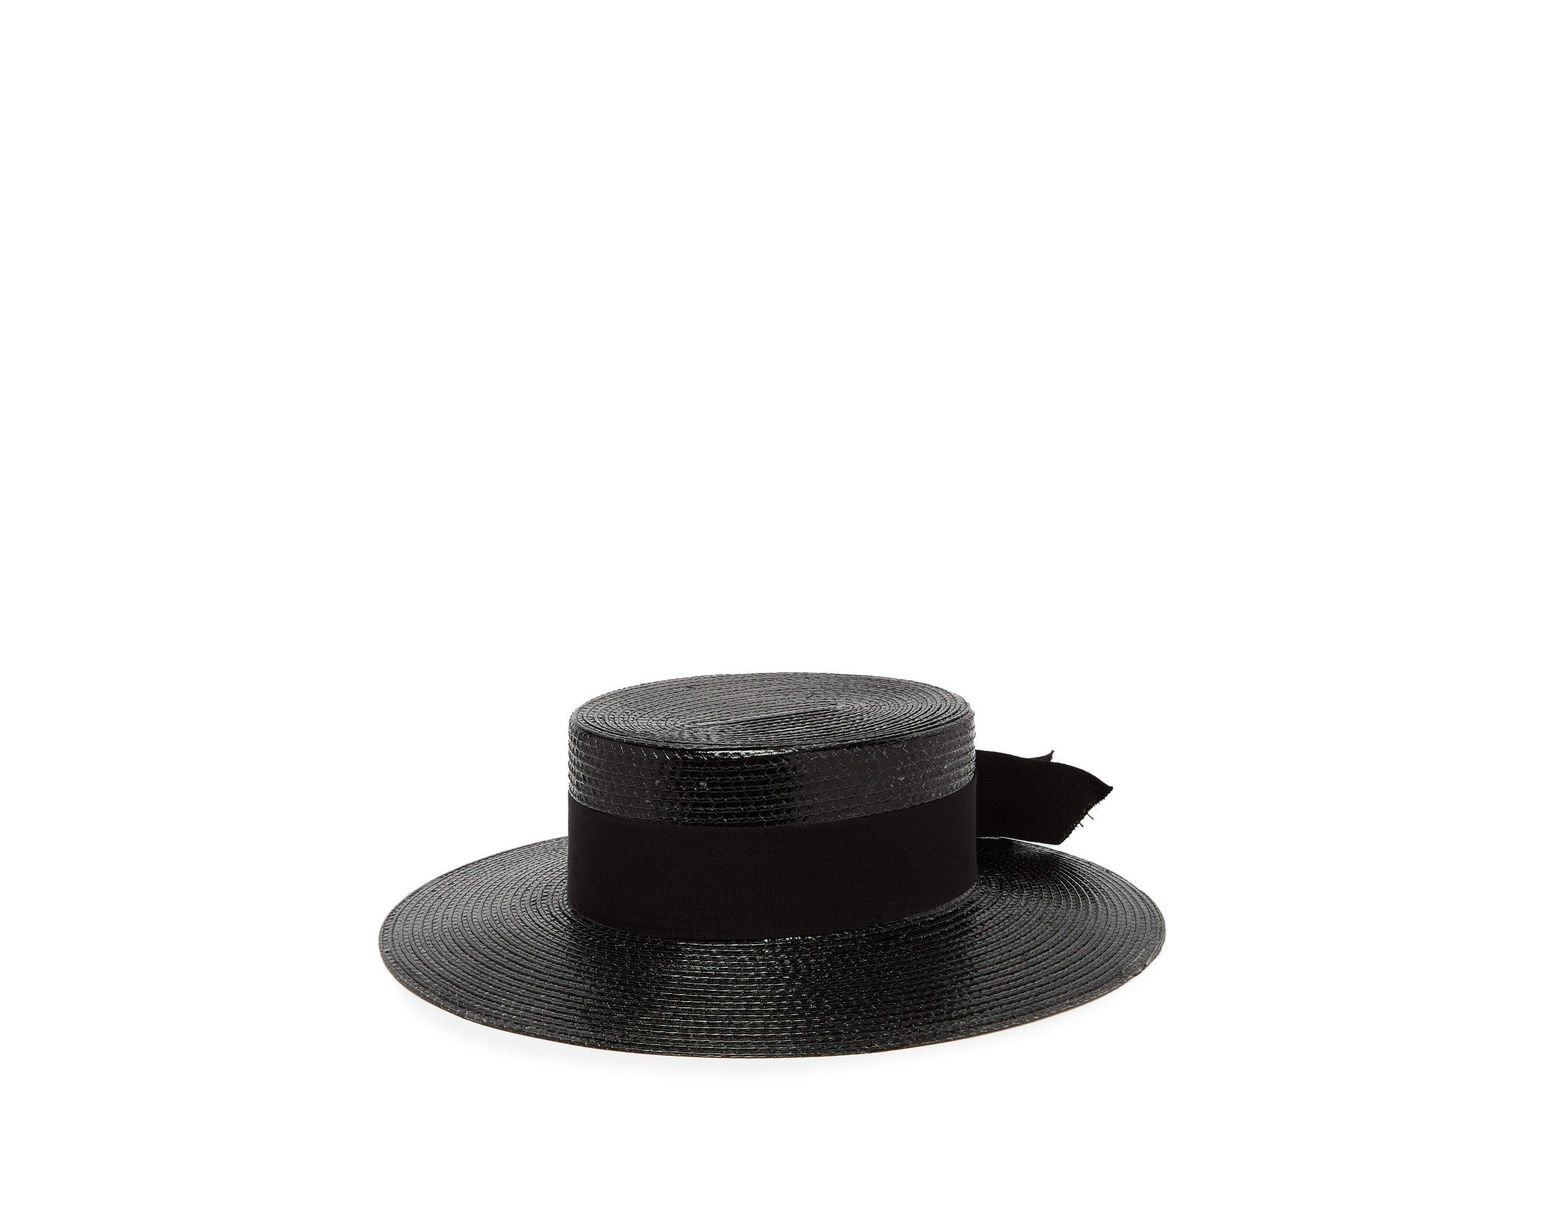 5fa412173f9 Women's Black Grosgrain Trim Straw Boater Hat